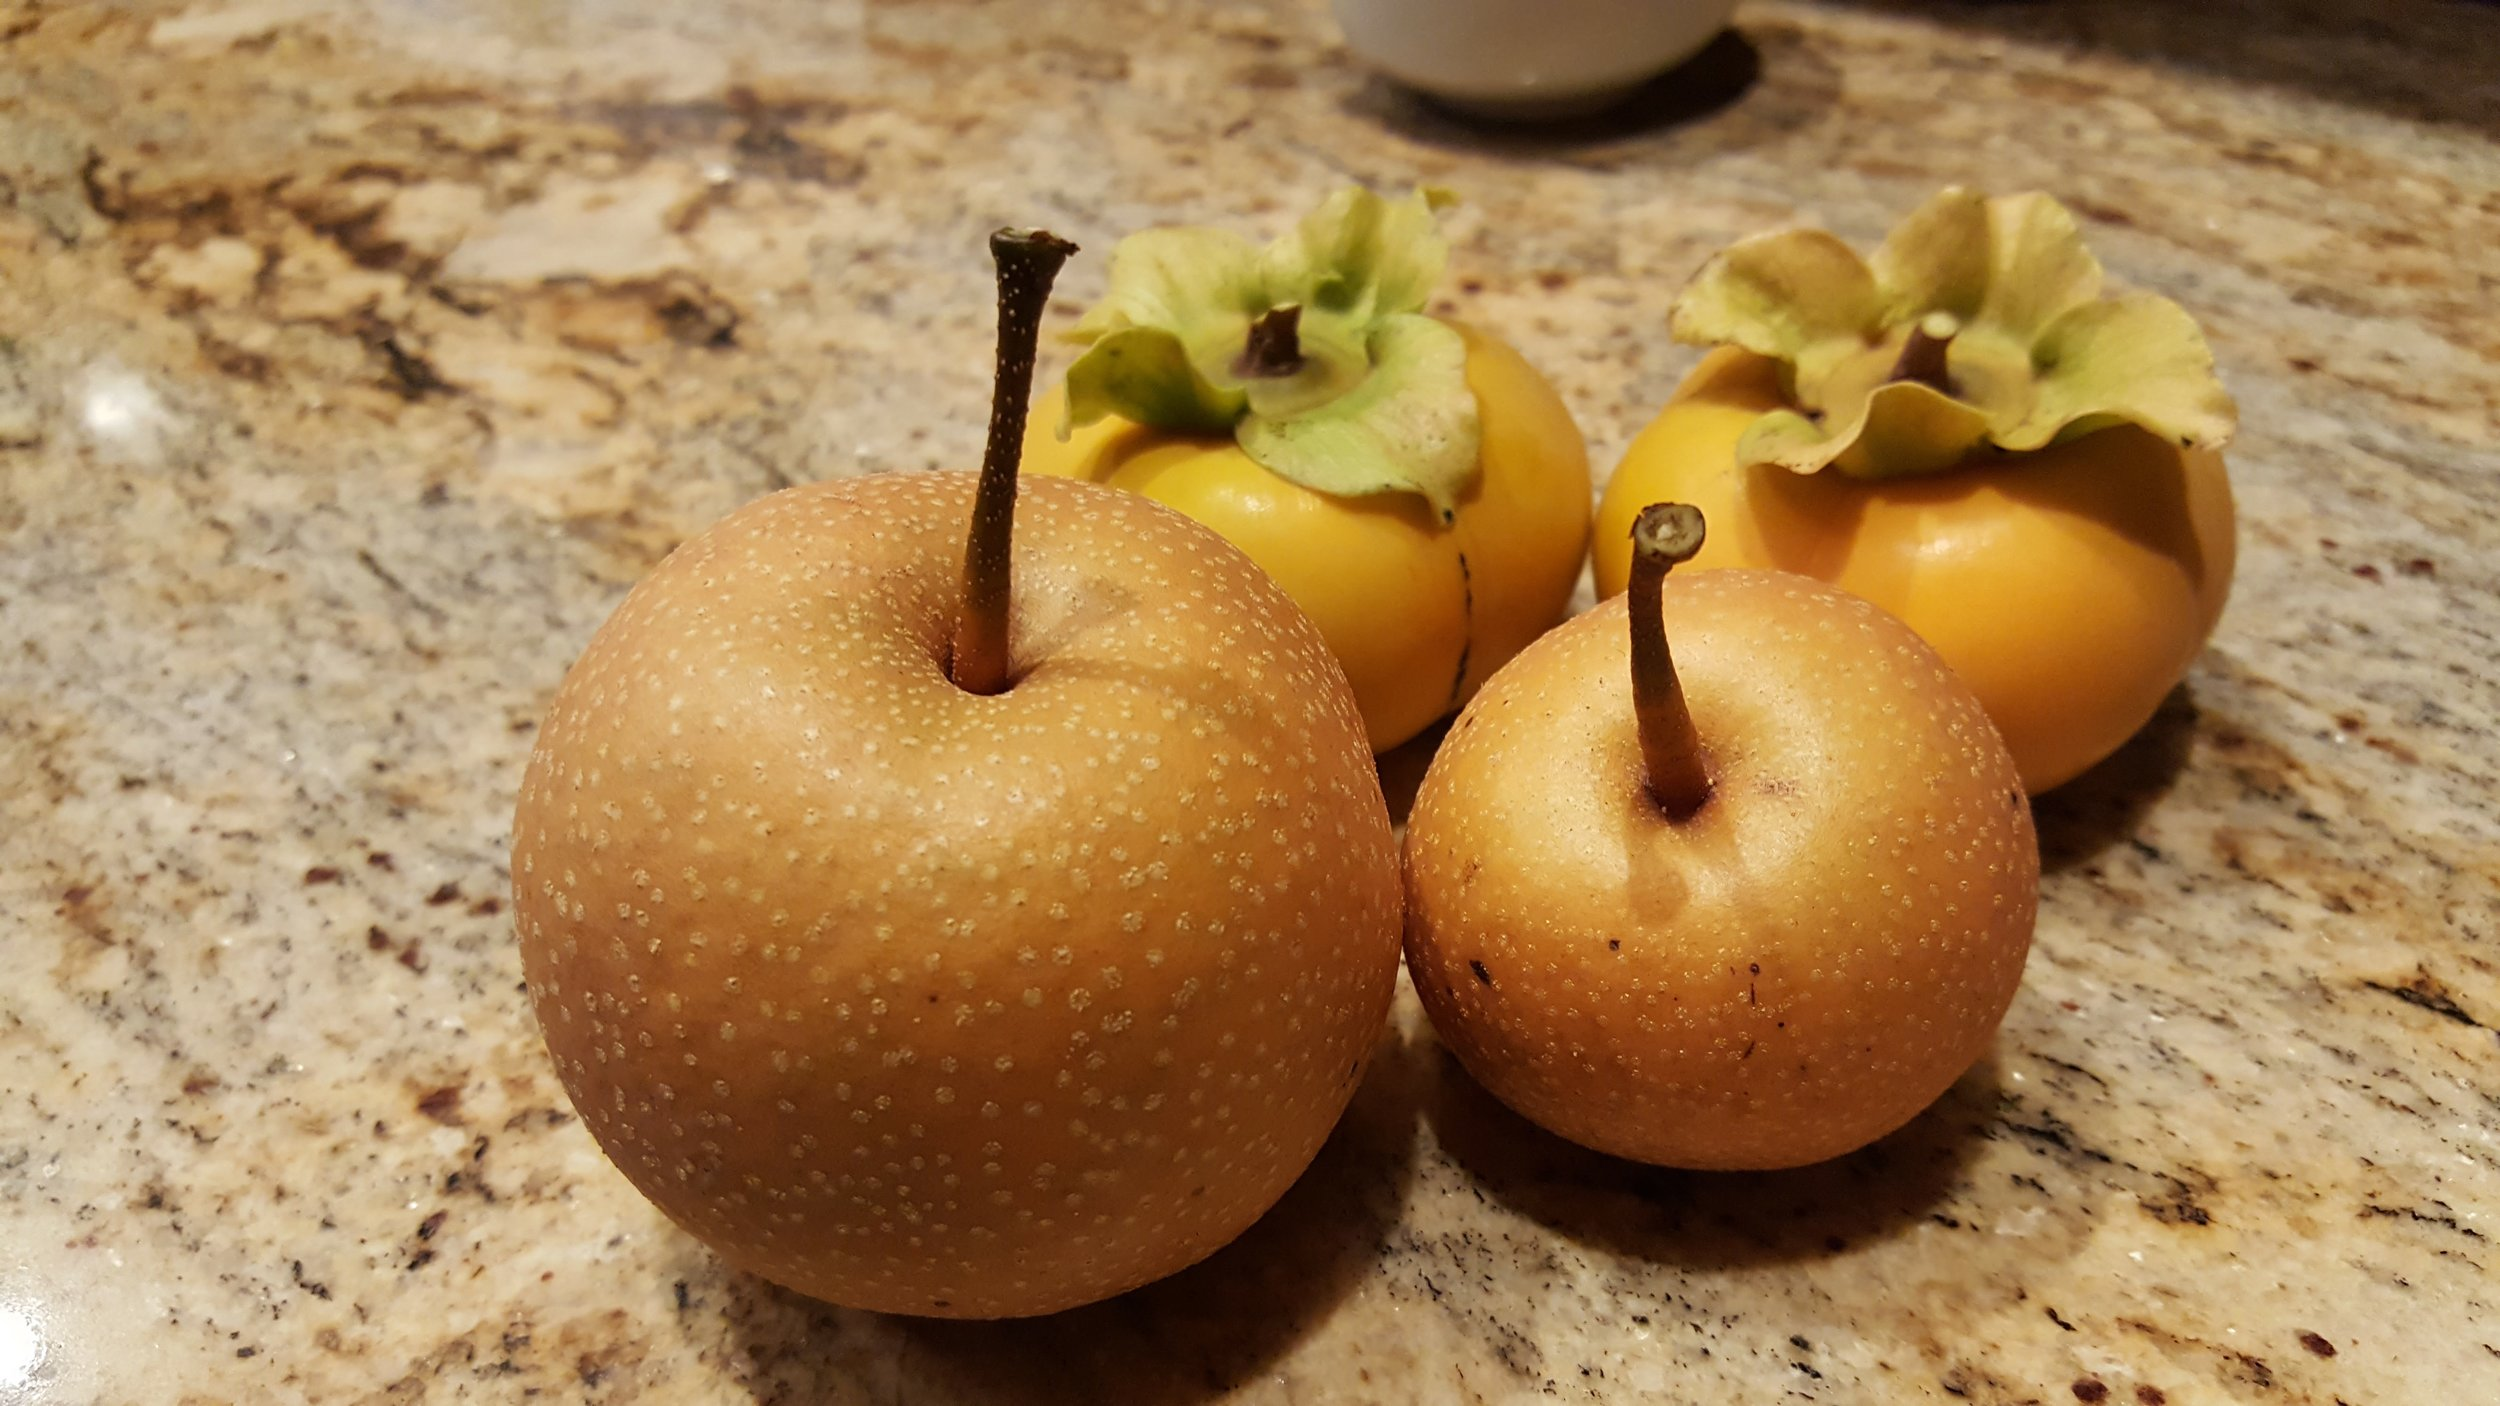 Asian pears and persimmons from our tree